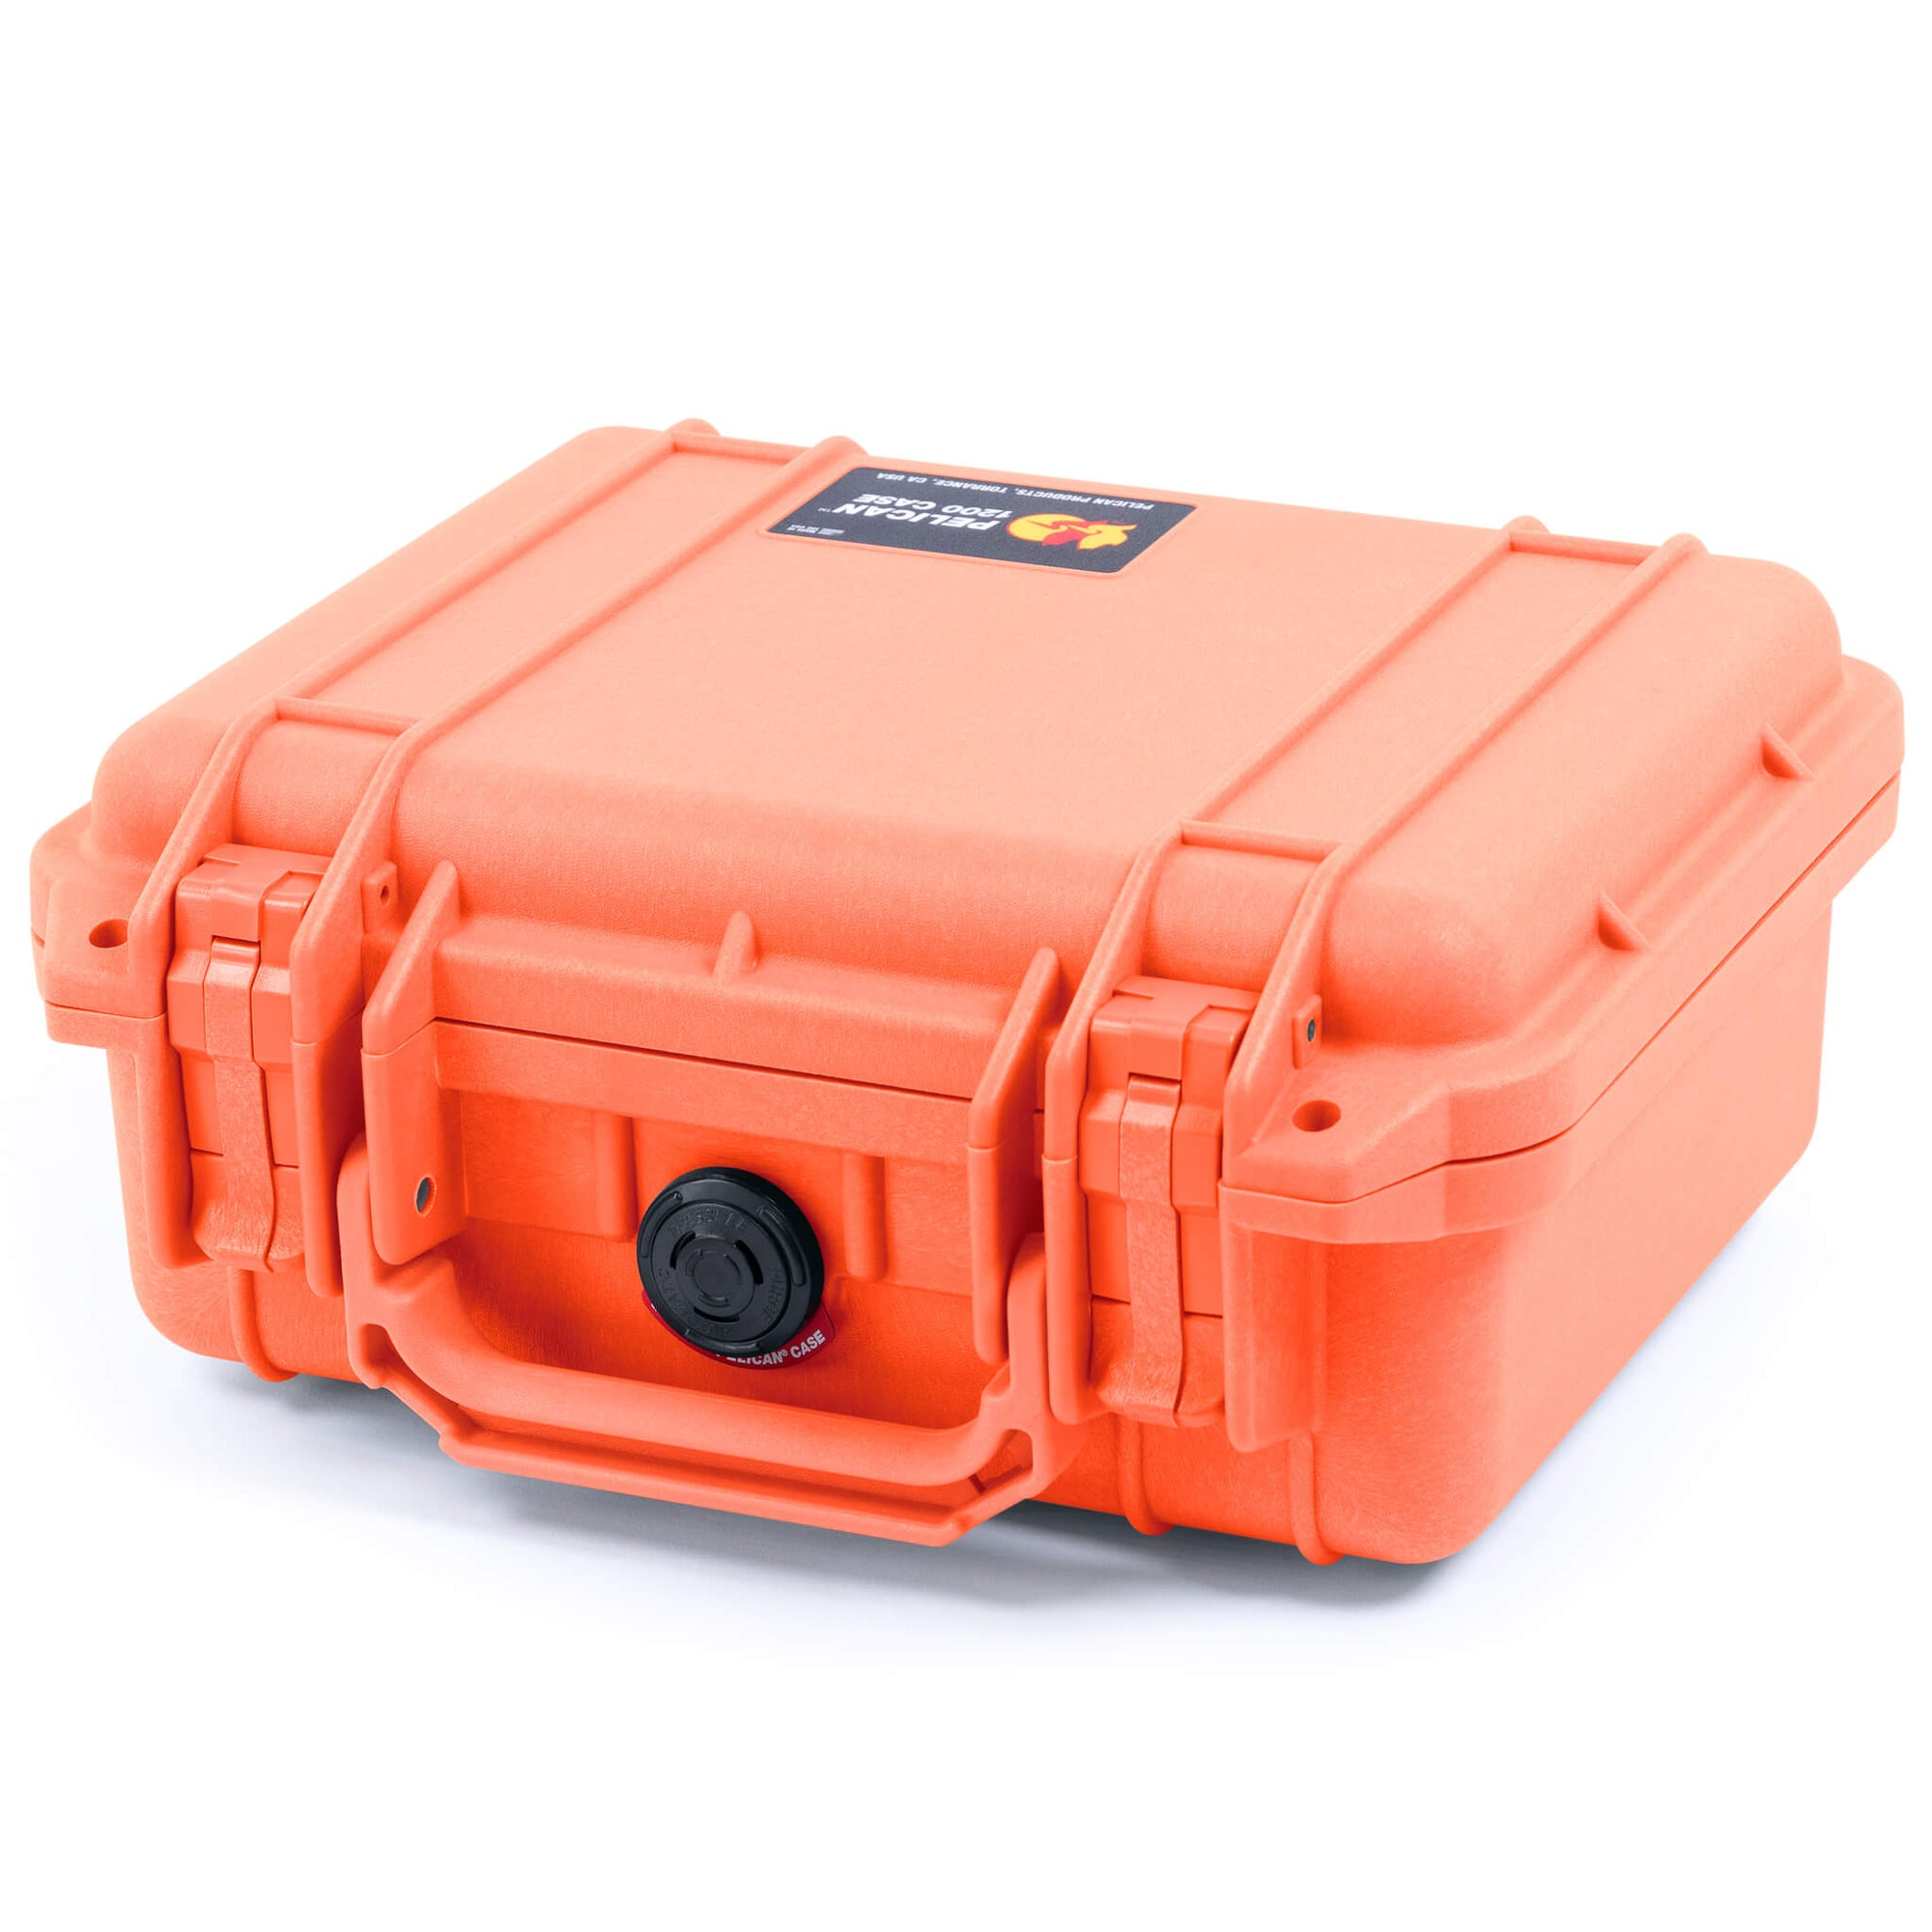 Pelican 1200 Case, Orange - Pelican Color Case